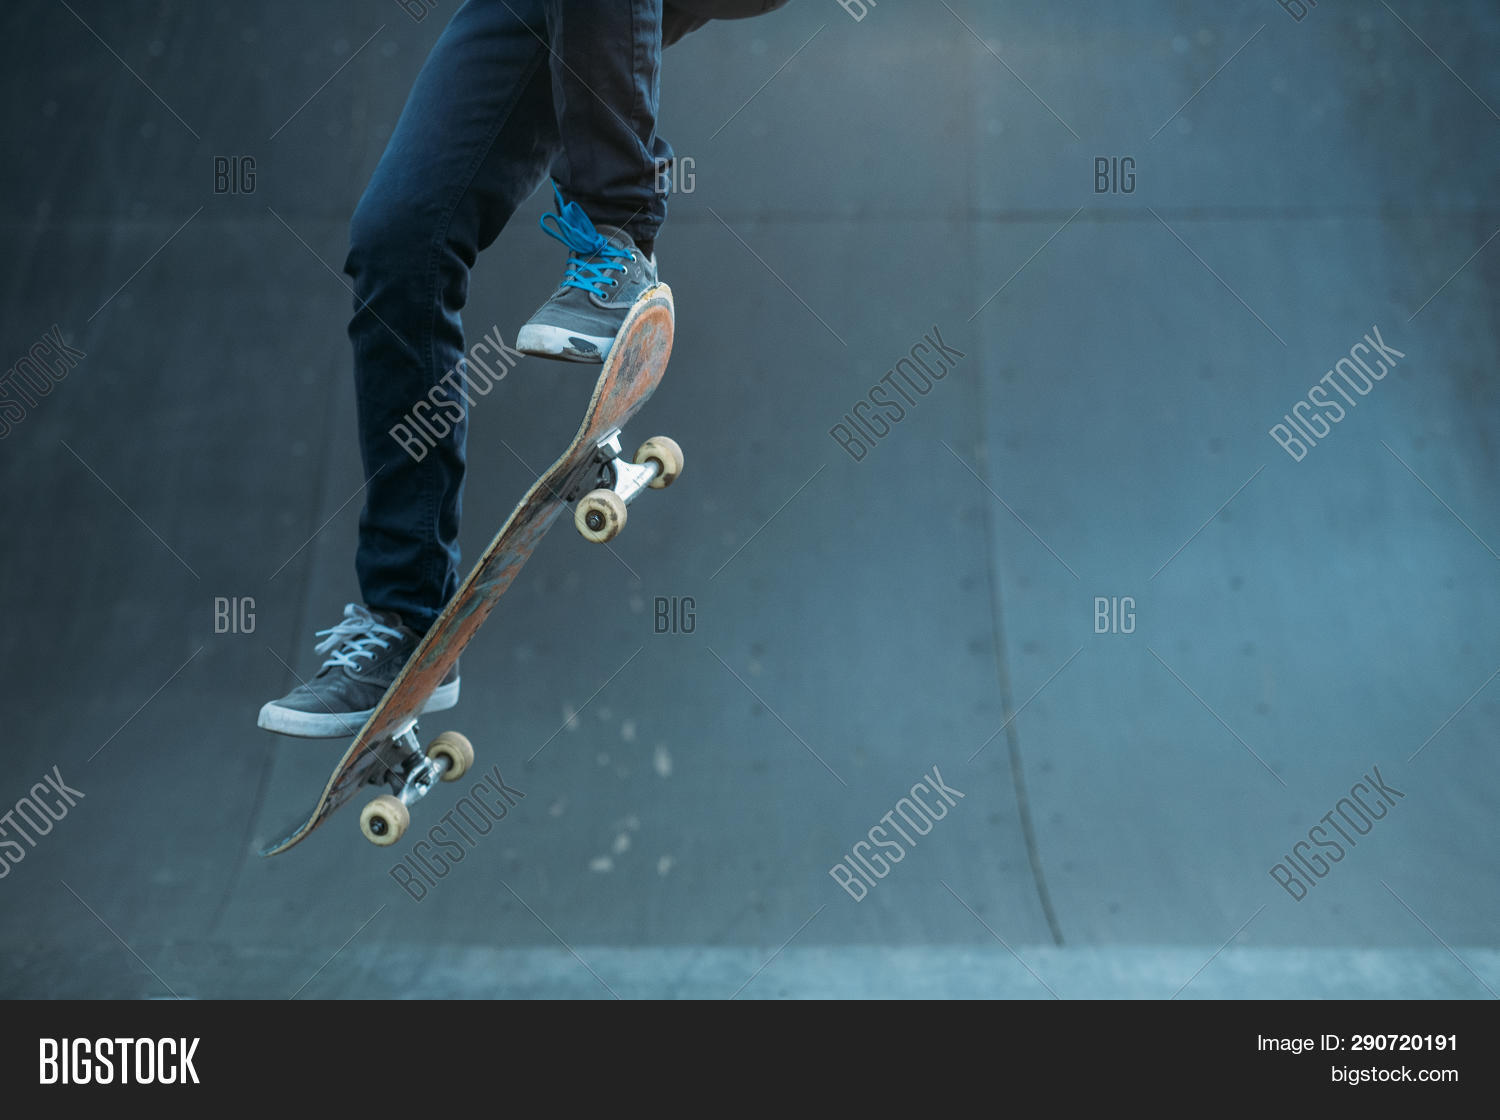 action,active,adult,alone,area,athletic,board,casual,caucasian,city,copyspace,culture,extreme,feet,freestyle,guy,hipster,hobby,leisure,life,lifestyle,longboard,male,man,modern,ollie,outdoor,park,people,performing,practice,ramp,shot,skate,skateboard,skateboarder,skateboarding,skater,speed,sport,style,trendy,trick,unrecognizable,urban,youth